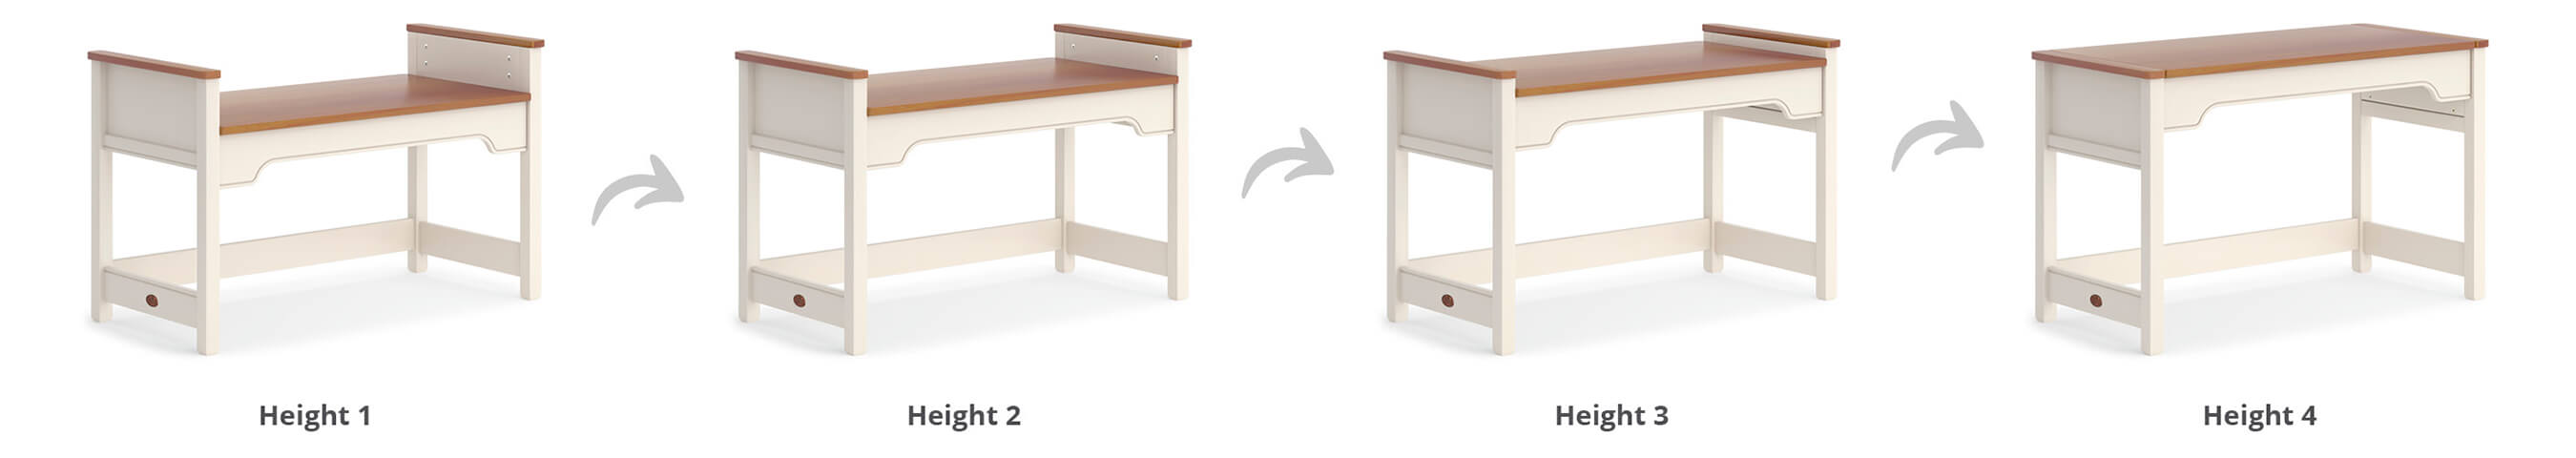 Feature_Highlight_CMS_Blocks_Height_Adjustable_Desks_and_Chairs_January_2021-039